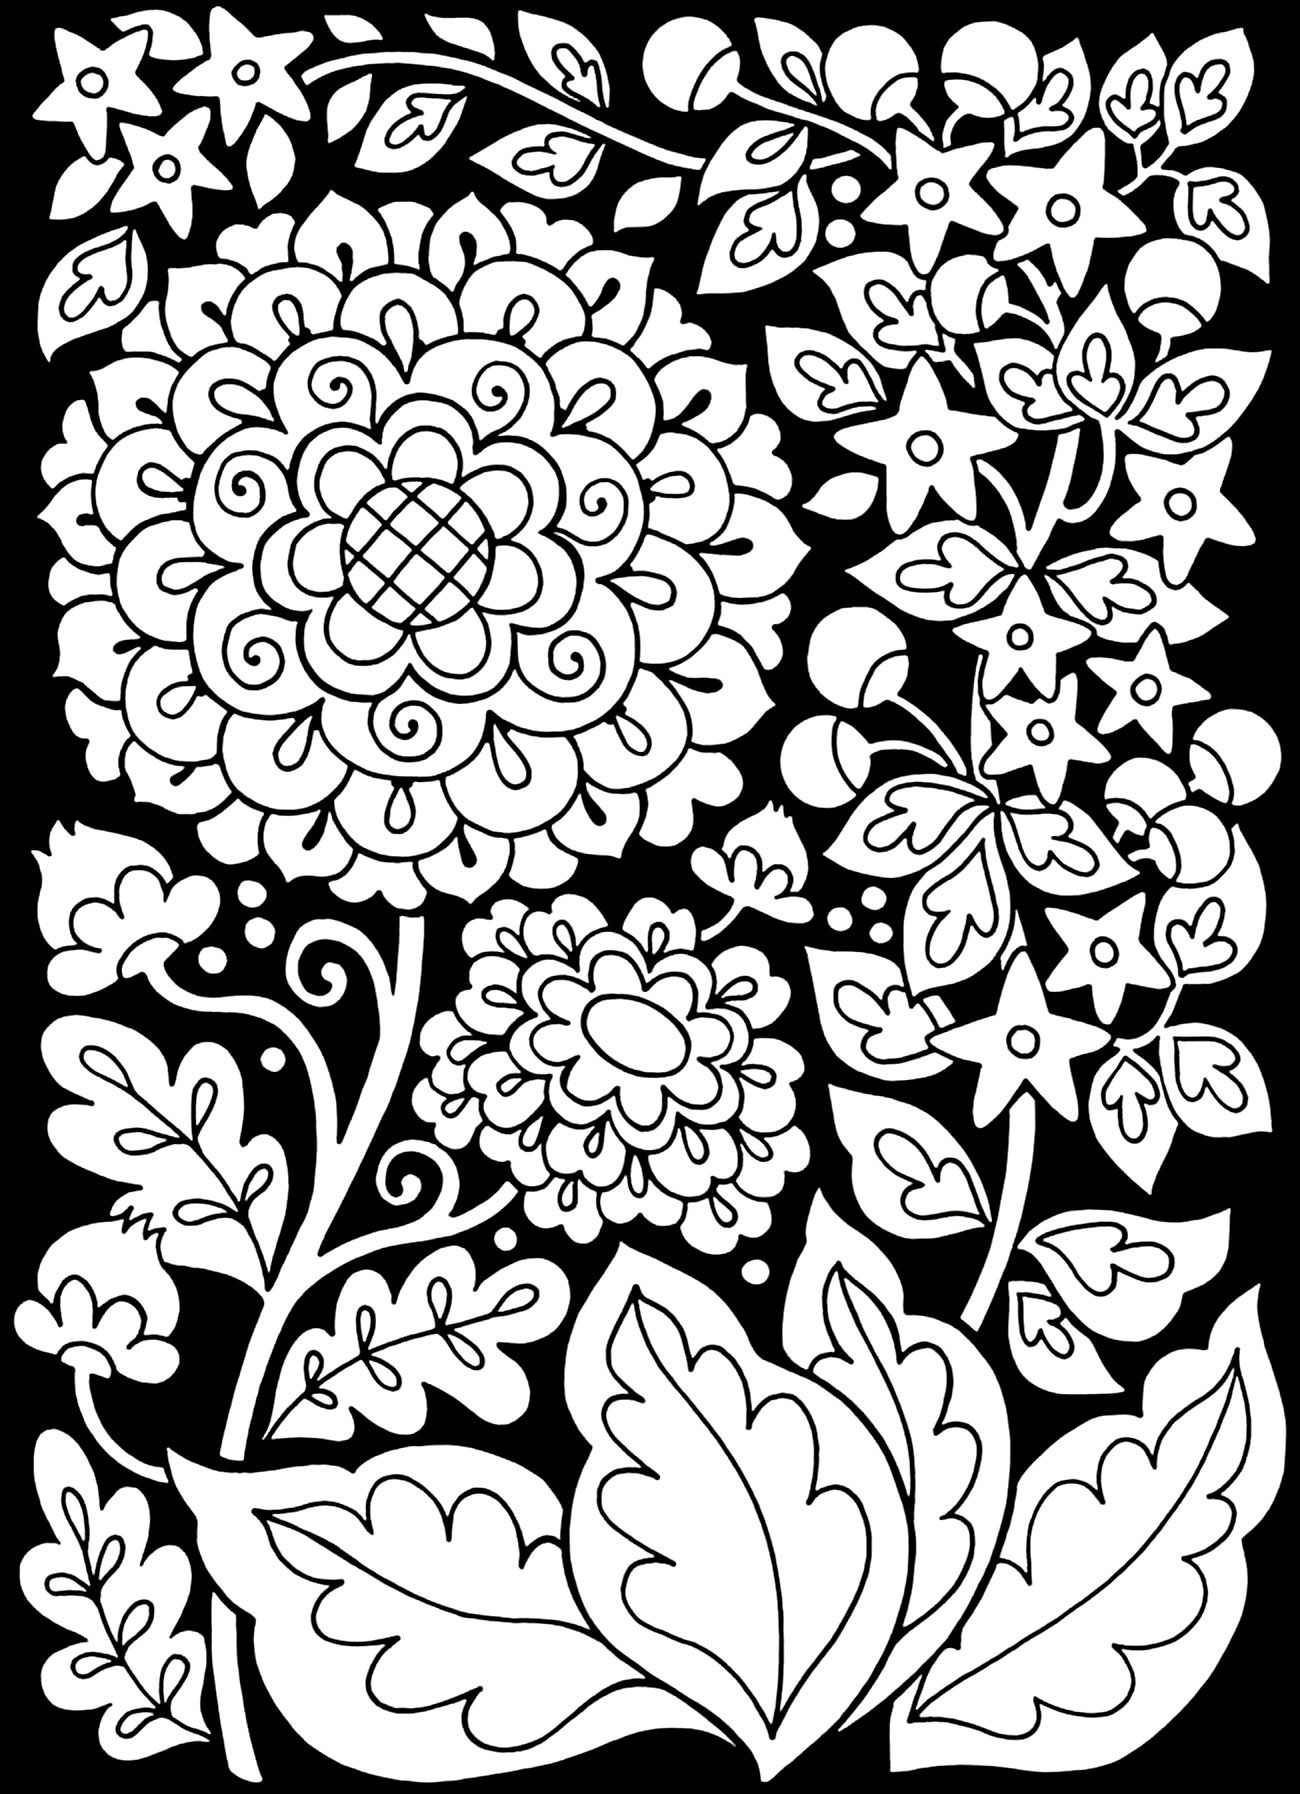 Flowers Black Background Flowers Vegetation Coloring Pages For